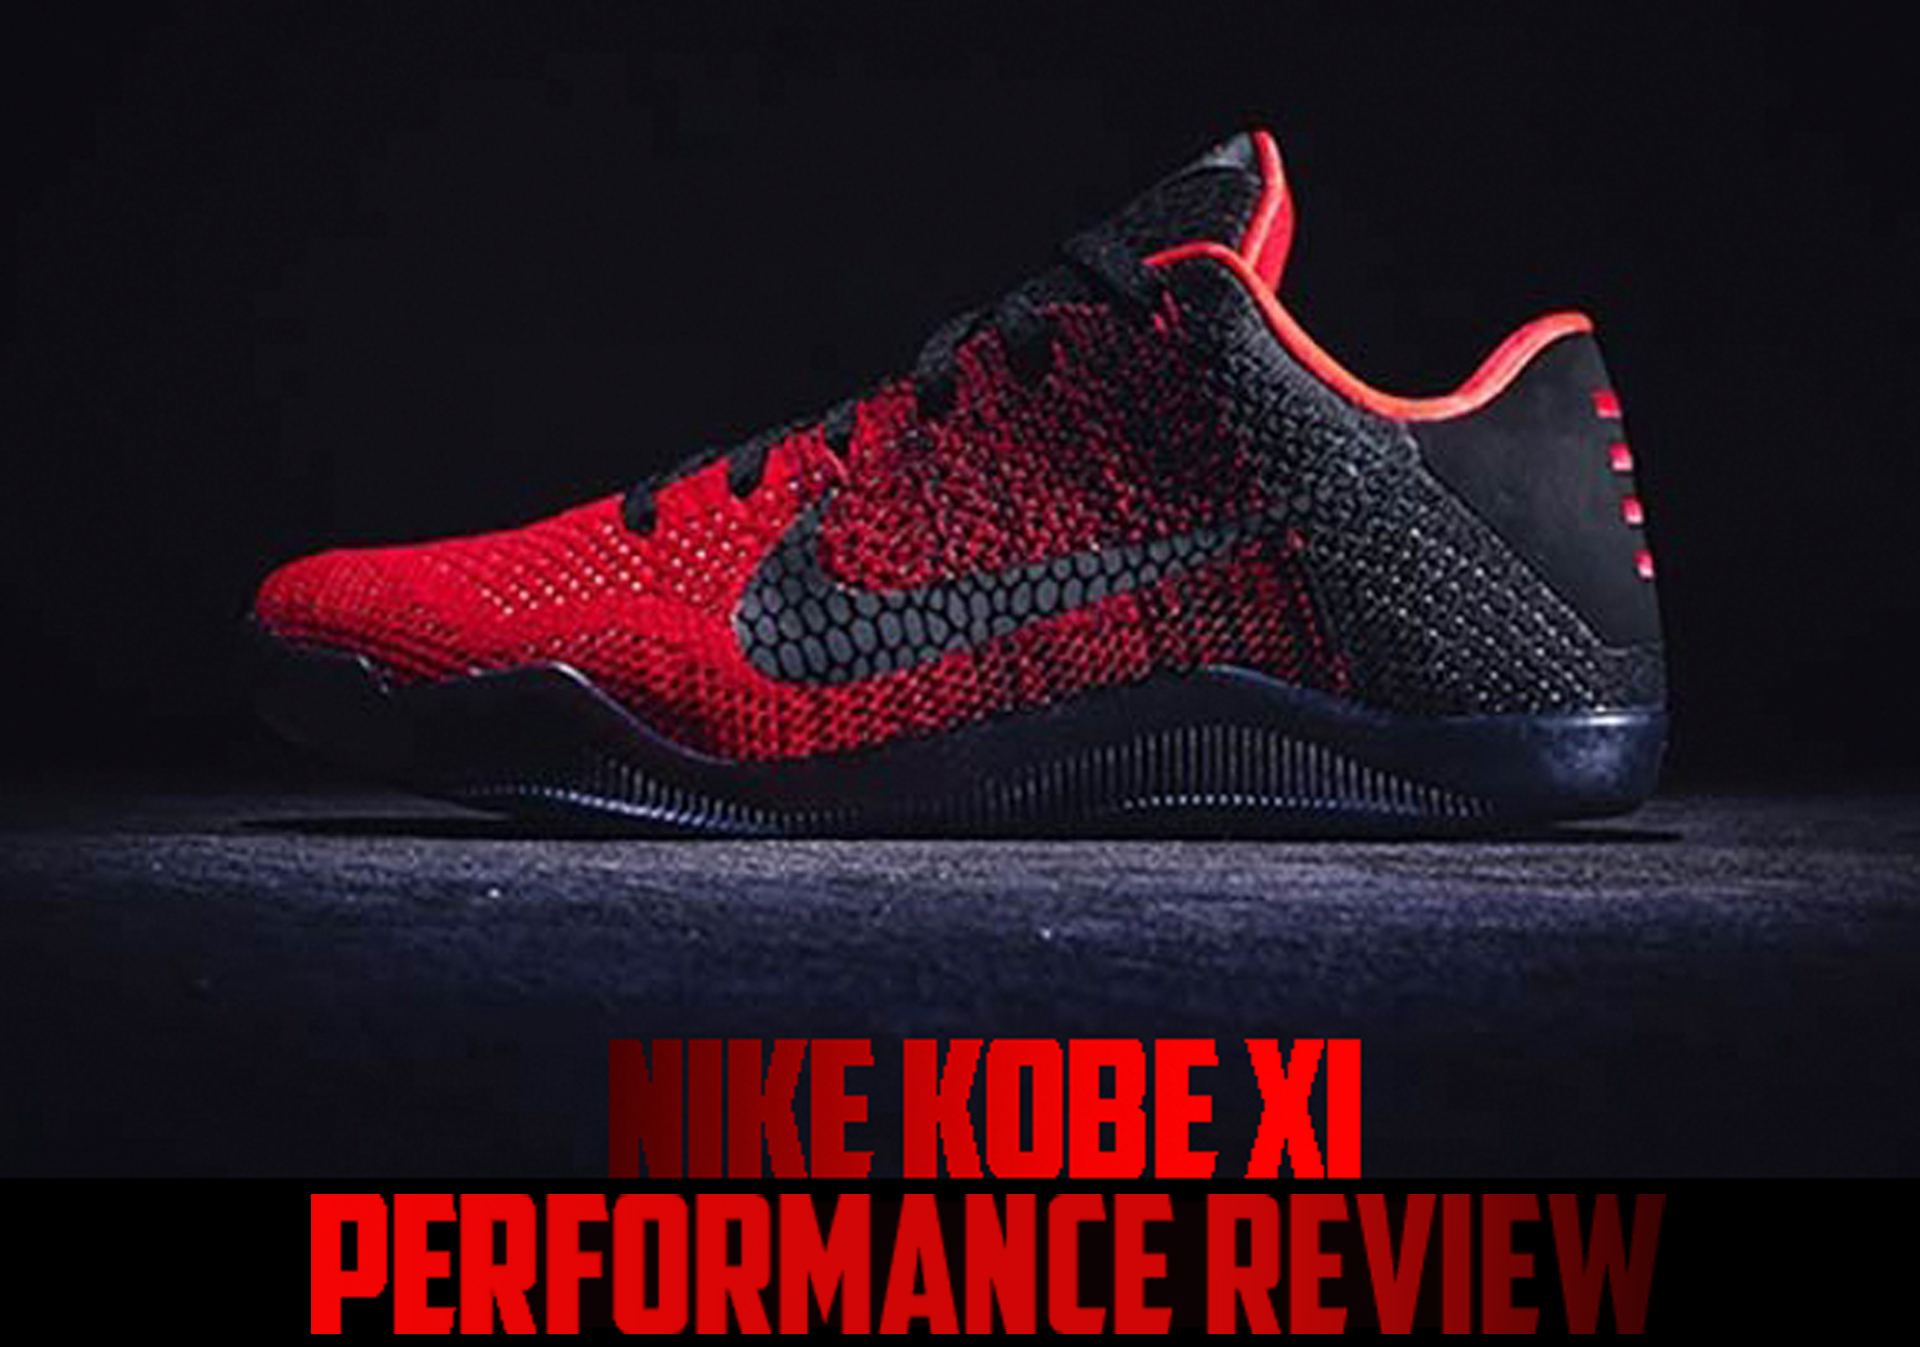 timeless design a1c38 ac503 Nike Kobe 11 Elite Performance Review - WearTesters